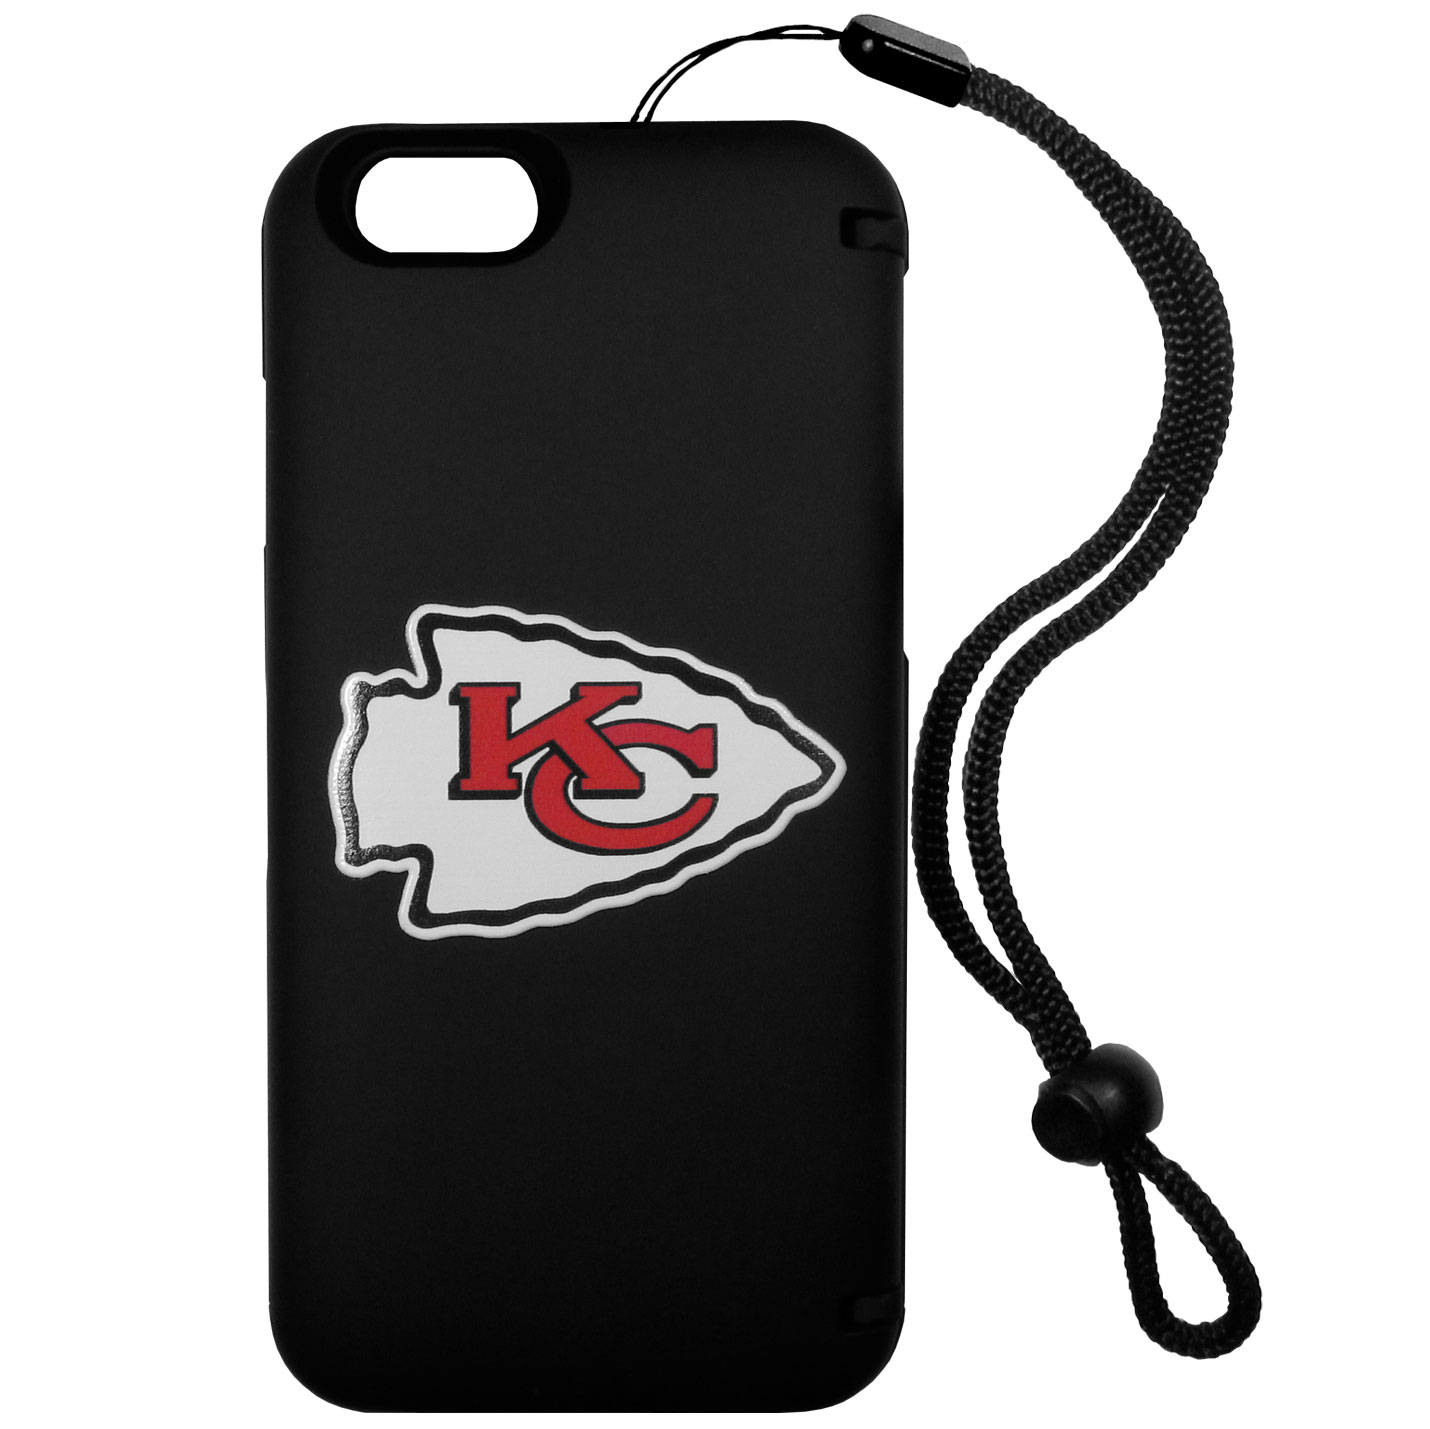 Kansas City Chiefs iPhone 6 Everything Case - This case really does have everything but the kitchen sink! The hidden compartment lets you keep your cards, money and tickets to the big game safe and secure and has a compact mirror so you can make sure your game face is ready to go. It also comes with a kickstand to make chatting and watching videos a breeze. The wrist strap allows you to travel with ease with your everything case. If that's not enough, it also comes with the Kansas City Chiefs logo printed in expert detail on the front.